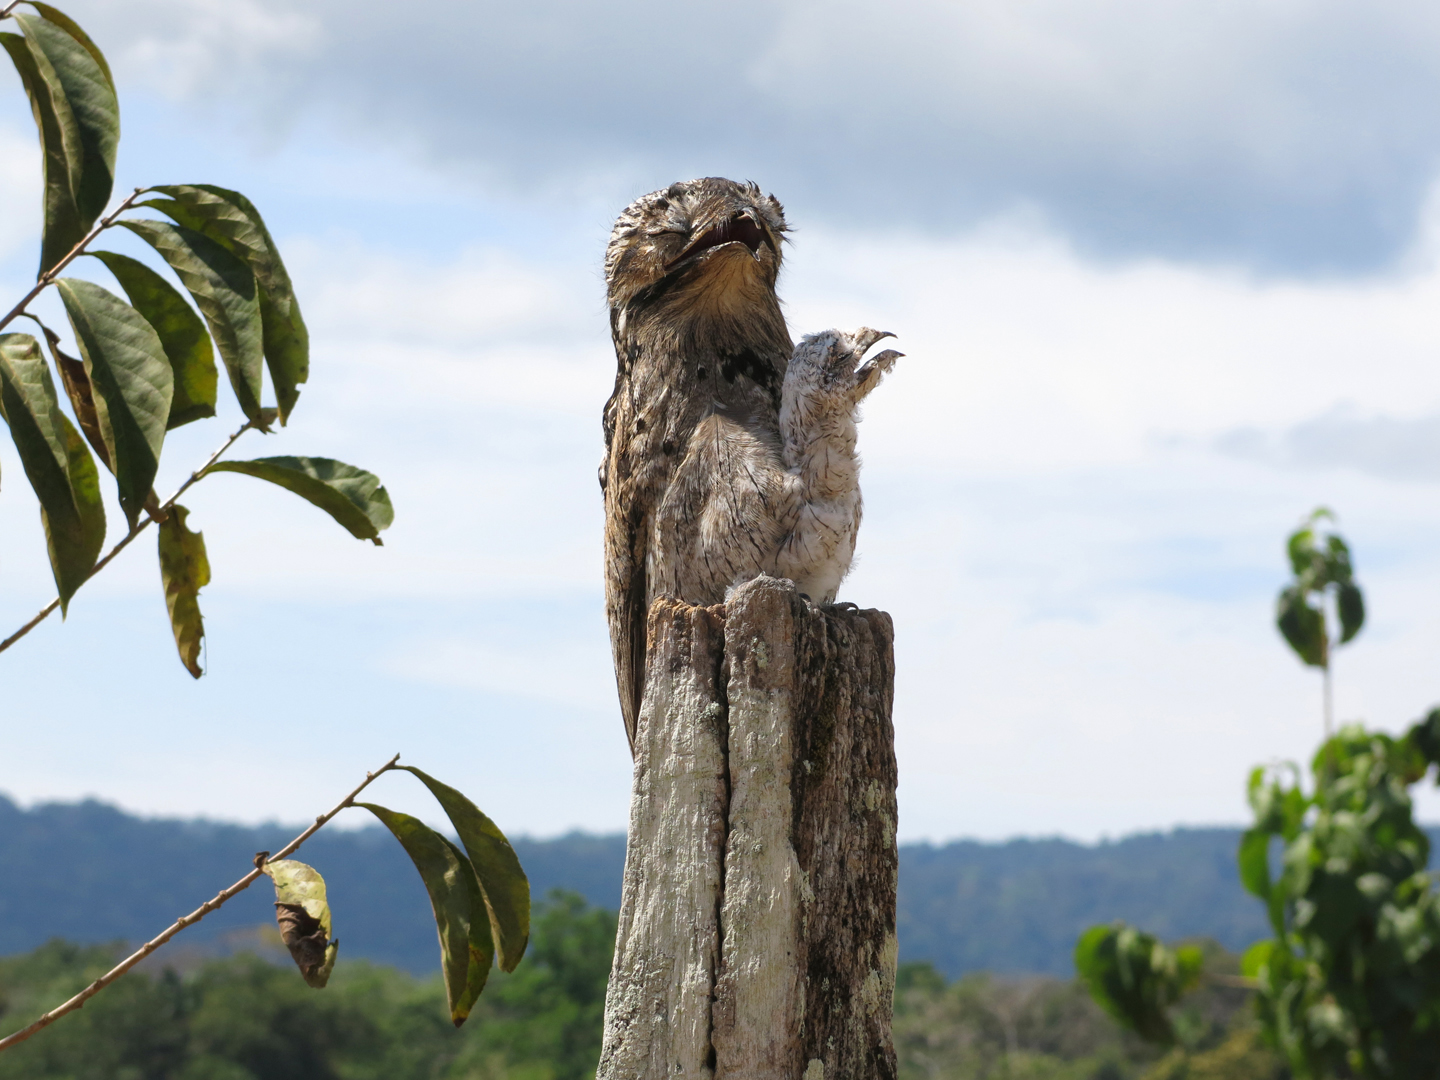 Potoo with baby, Costa Rica